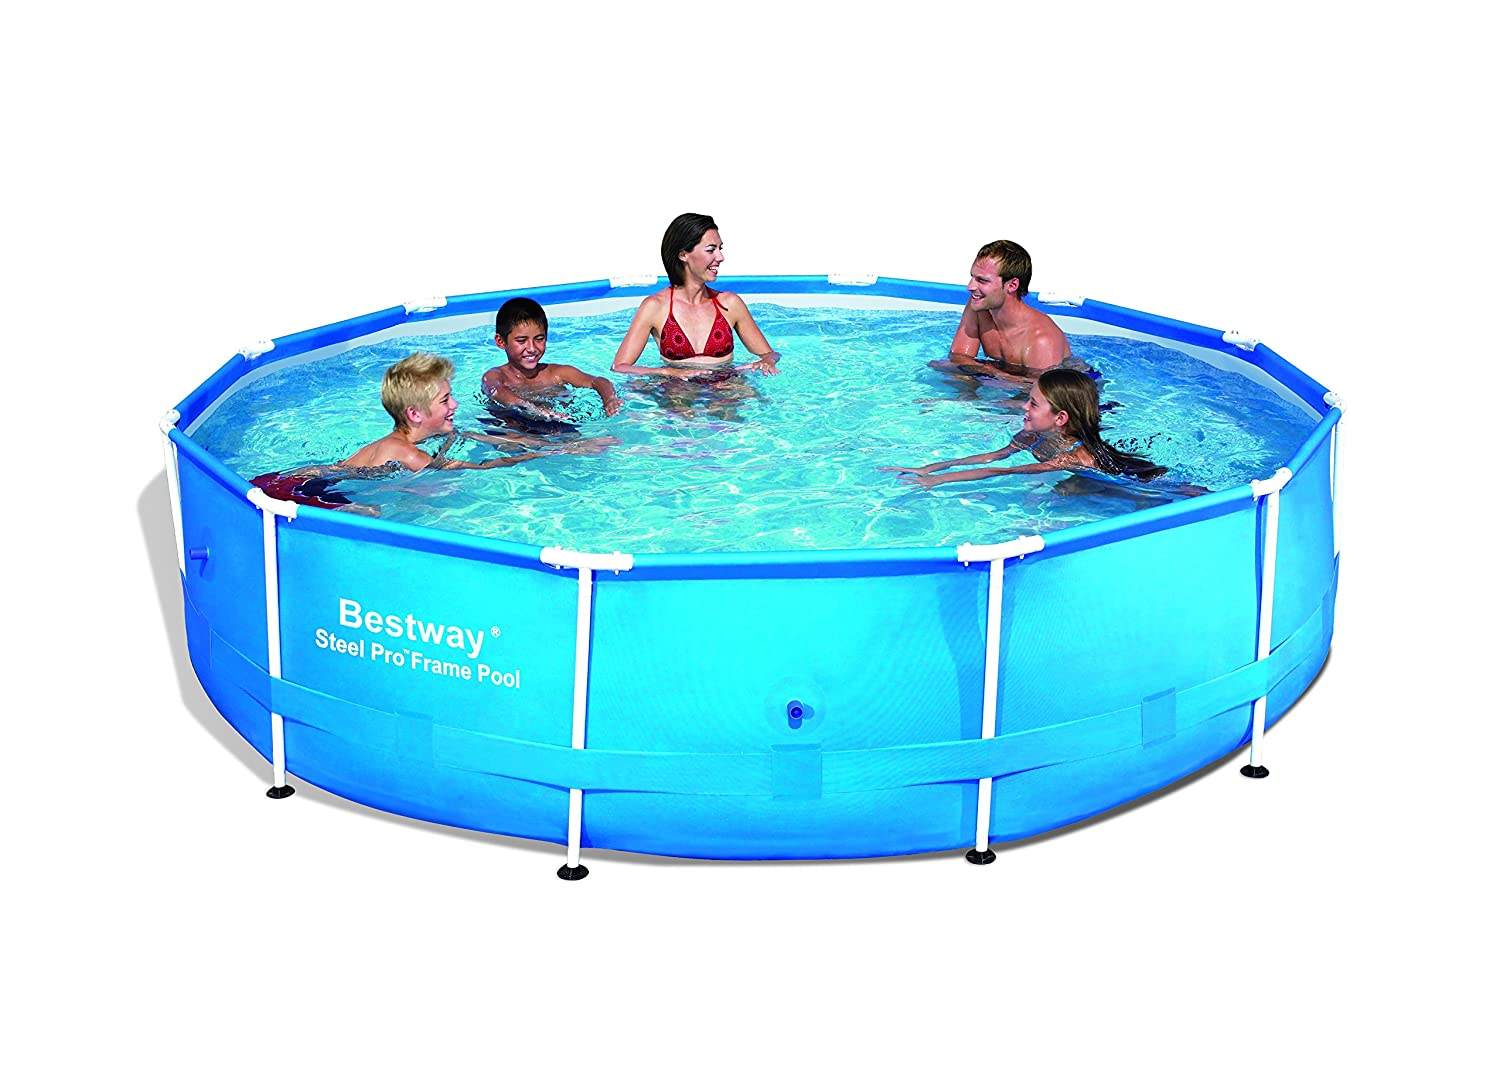 bestway steel pro frame swimming pool 12ft x 30inch brand new ebay. Black Bedroom Furniture Sets. Home Design Ideas